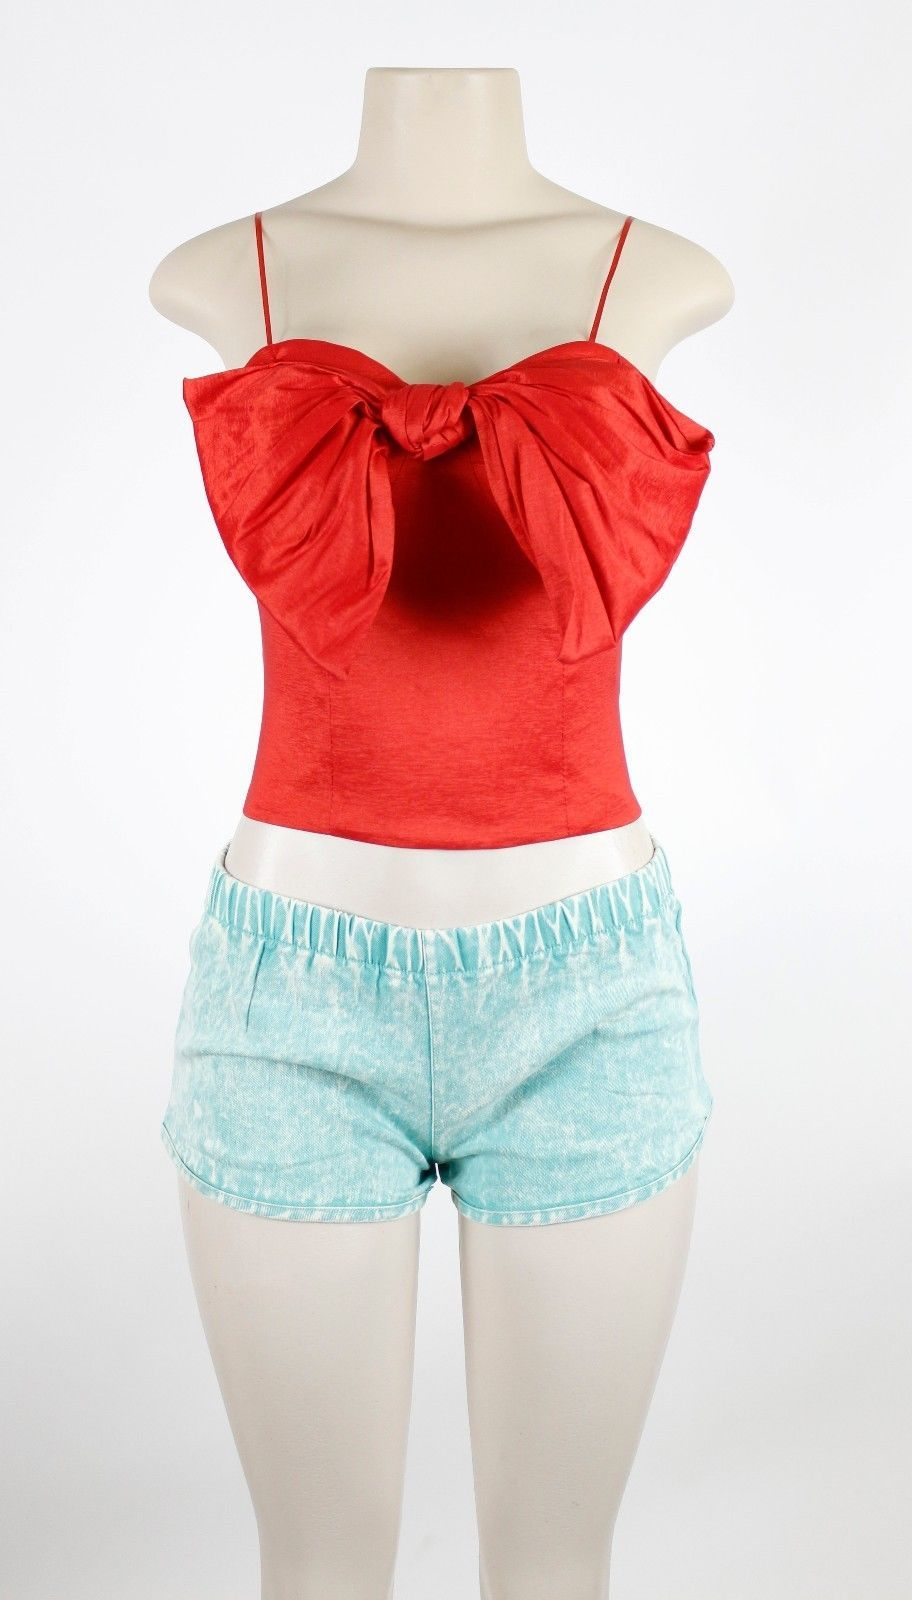 132586df771 Women's Red Large Bow Sweetheart Neck Spaghetti Strap Crop Top S M L ...